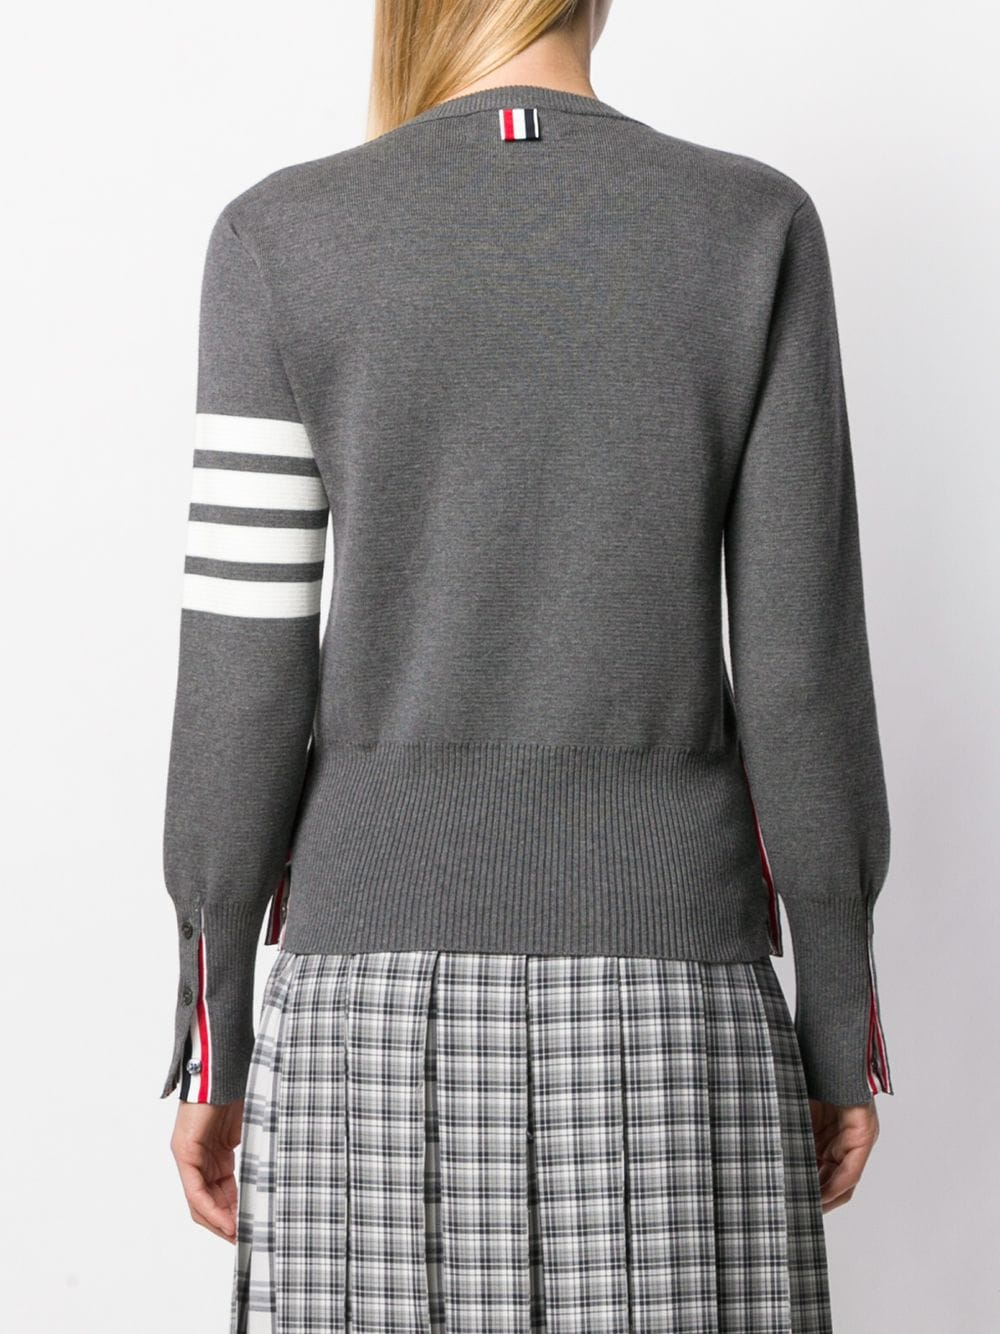 THOM BROWNE WOMEN MILANO STITCH CLASSIC CREW NECK PULLOVER IN COTTON CREPE WITH 4 BAR